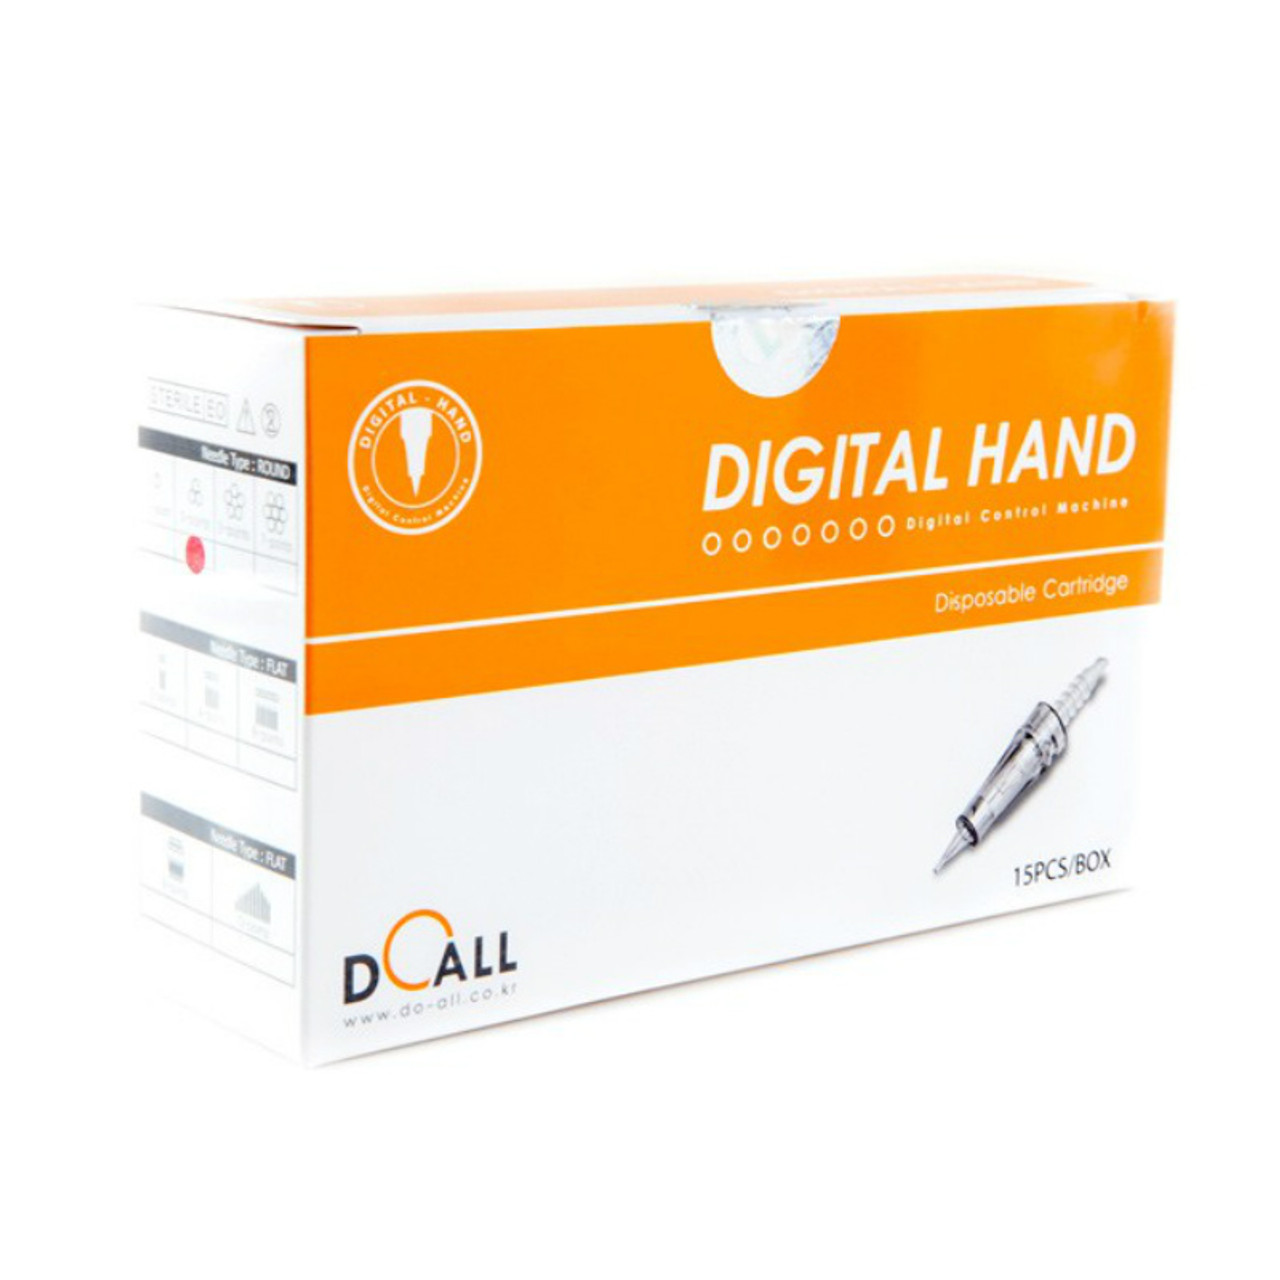 Do-All Digital Permanent Makeup (PMU) Cartridge Needle - 3R